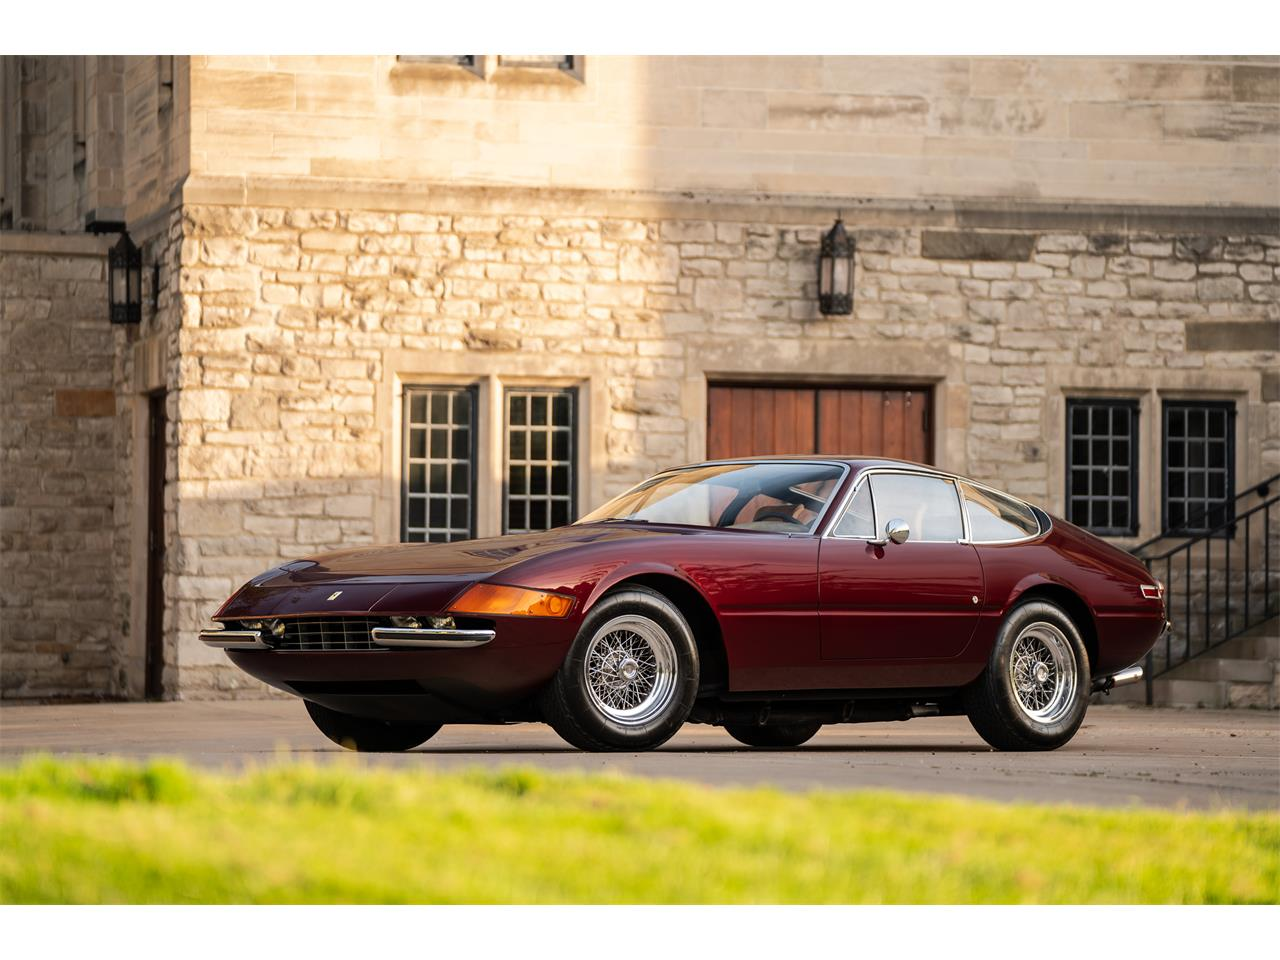 Large Picture of Classic '72 Ferrari 365 GTB/4 Daytona located in Michigan Offered by LBI Limited - QL32